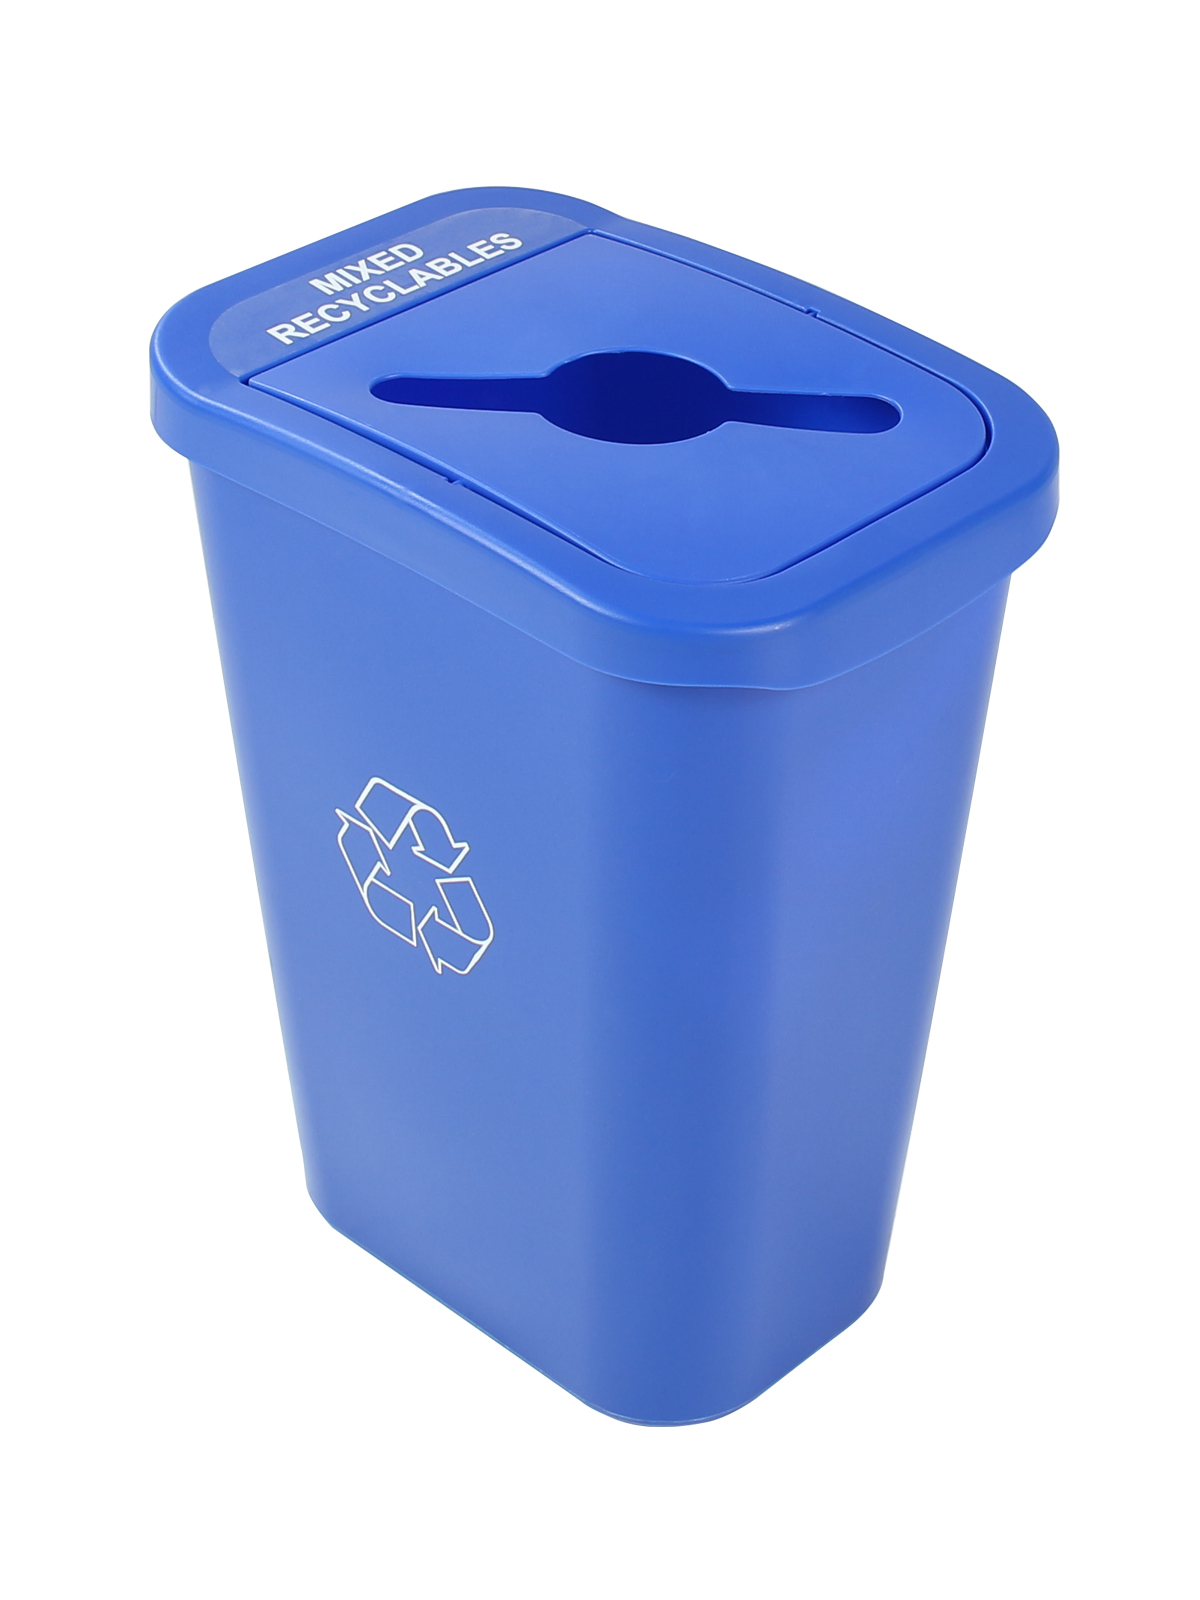 BILLI BOX - Single - 10 G - Mixed Recyclables - Mixed - Blue title=